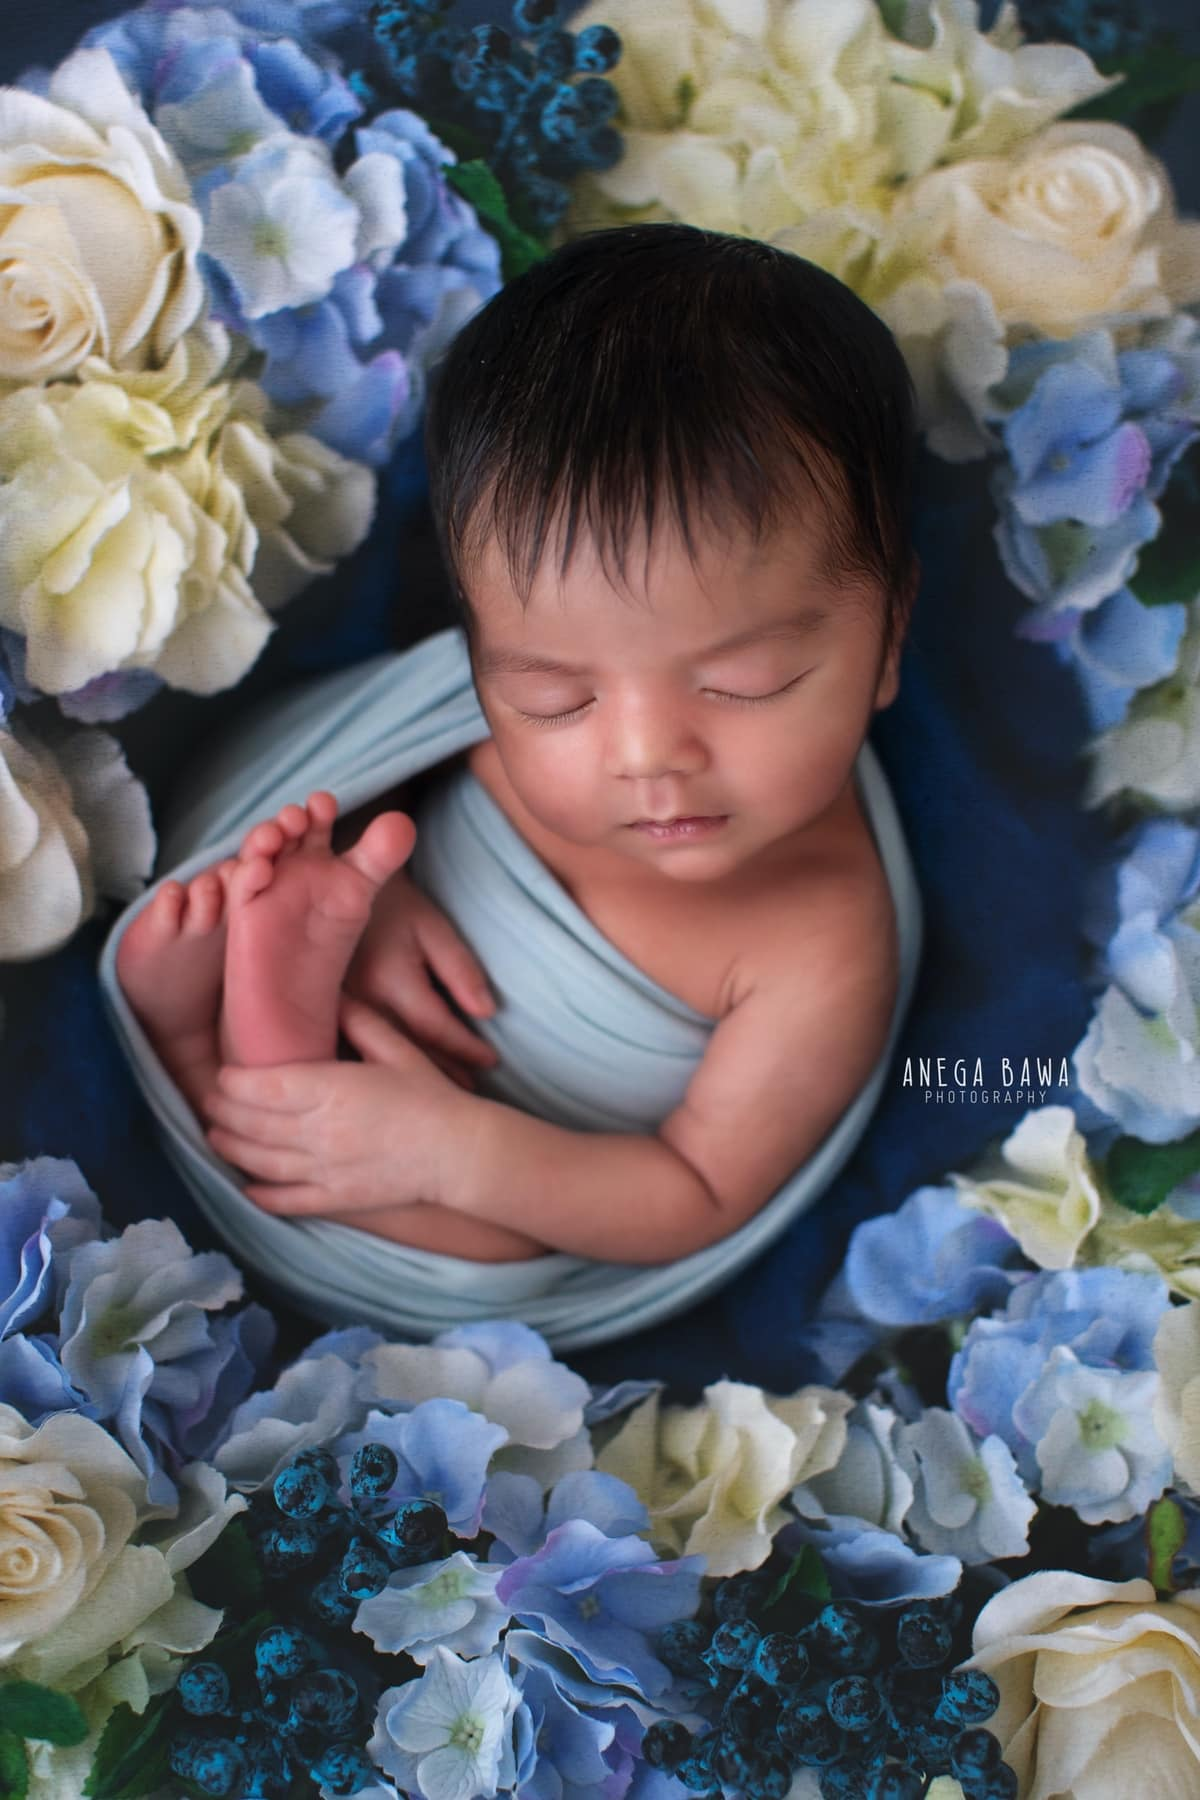 blue floral newborn photography delhi 20 days baby boy photoshoot gurgaon anega bawa